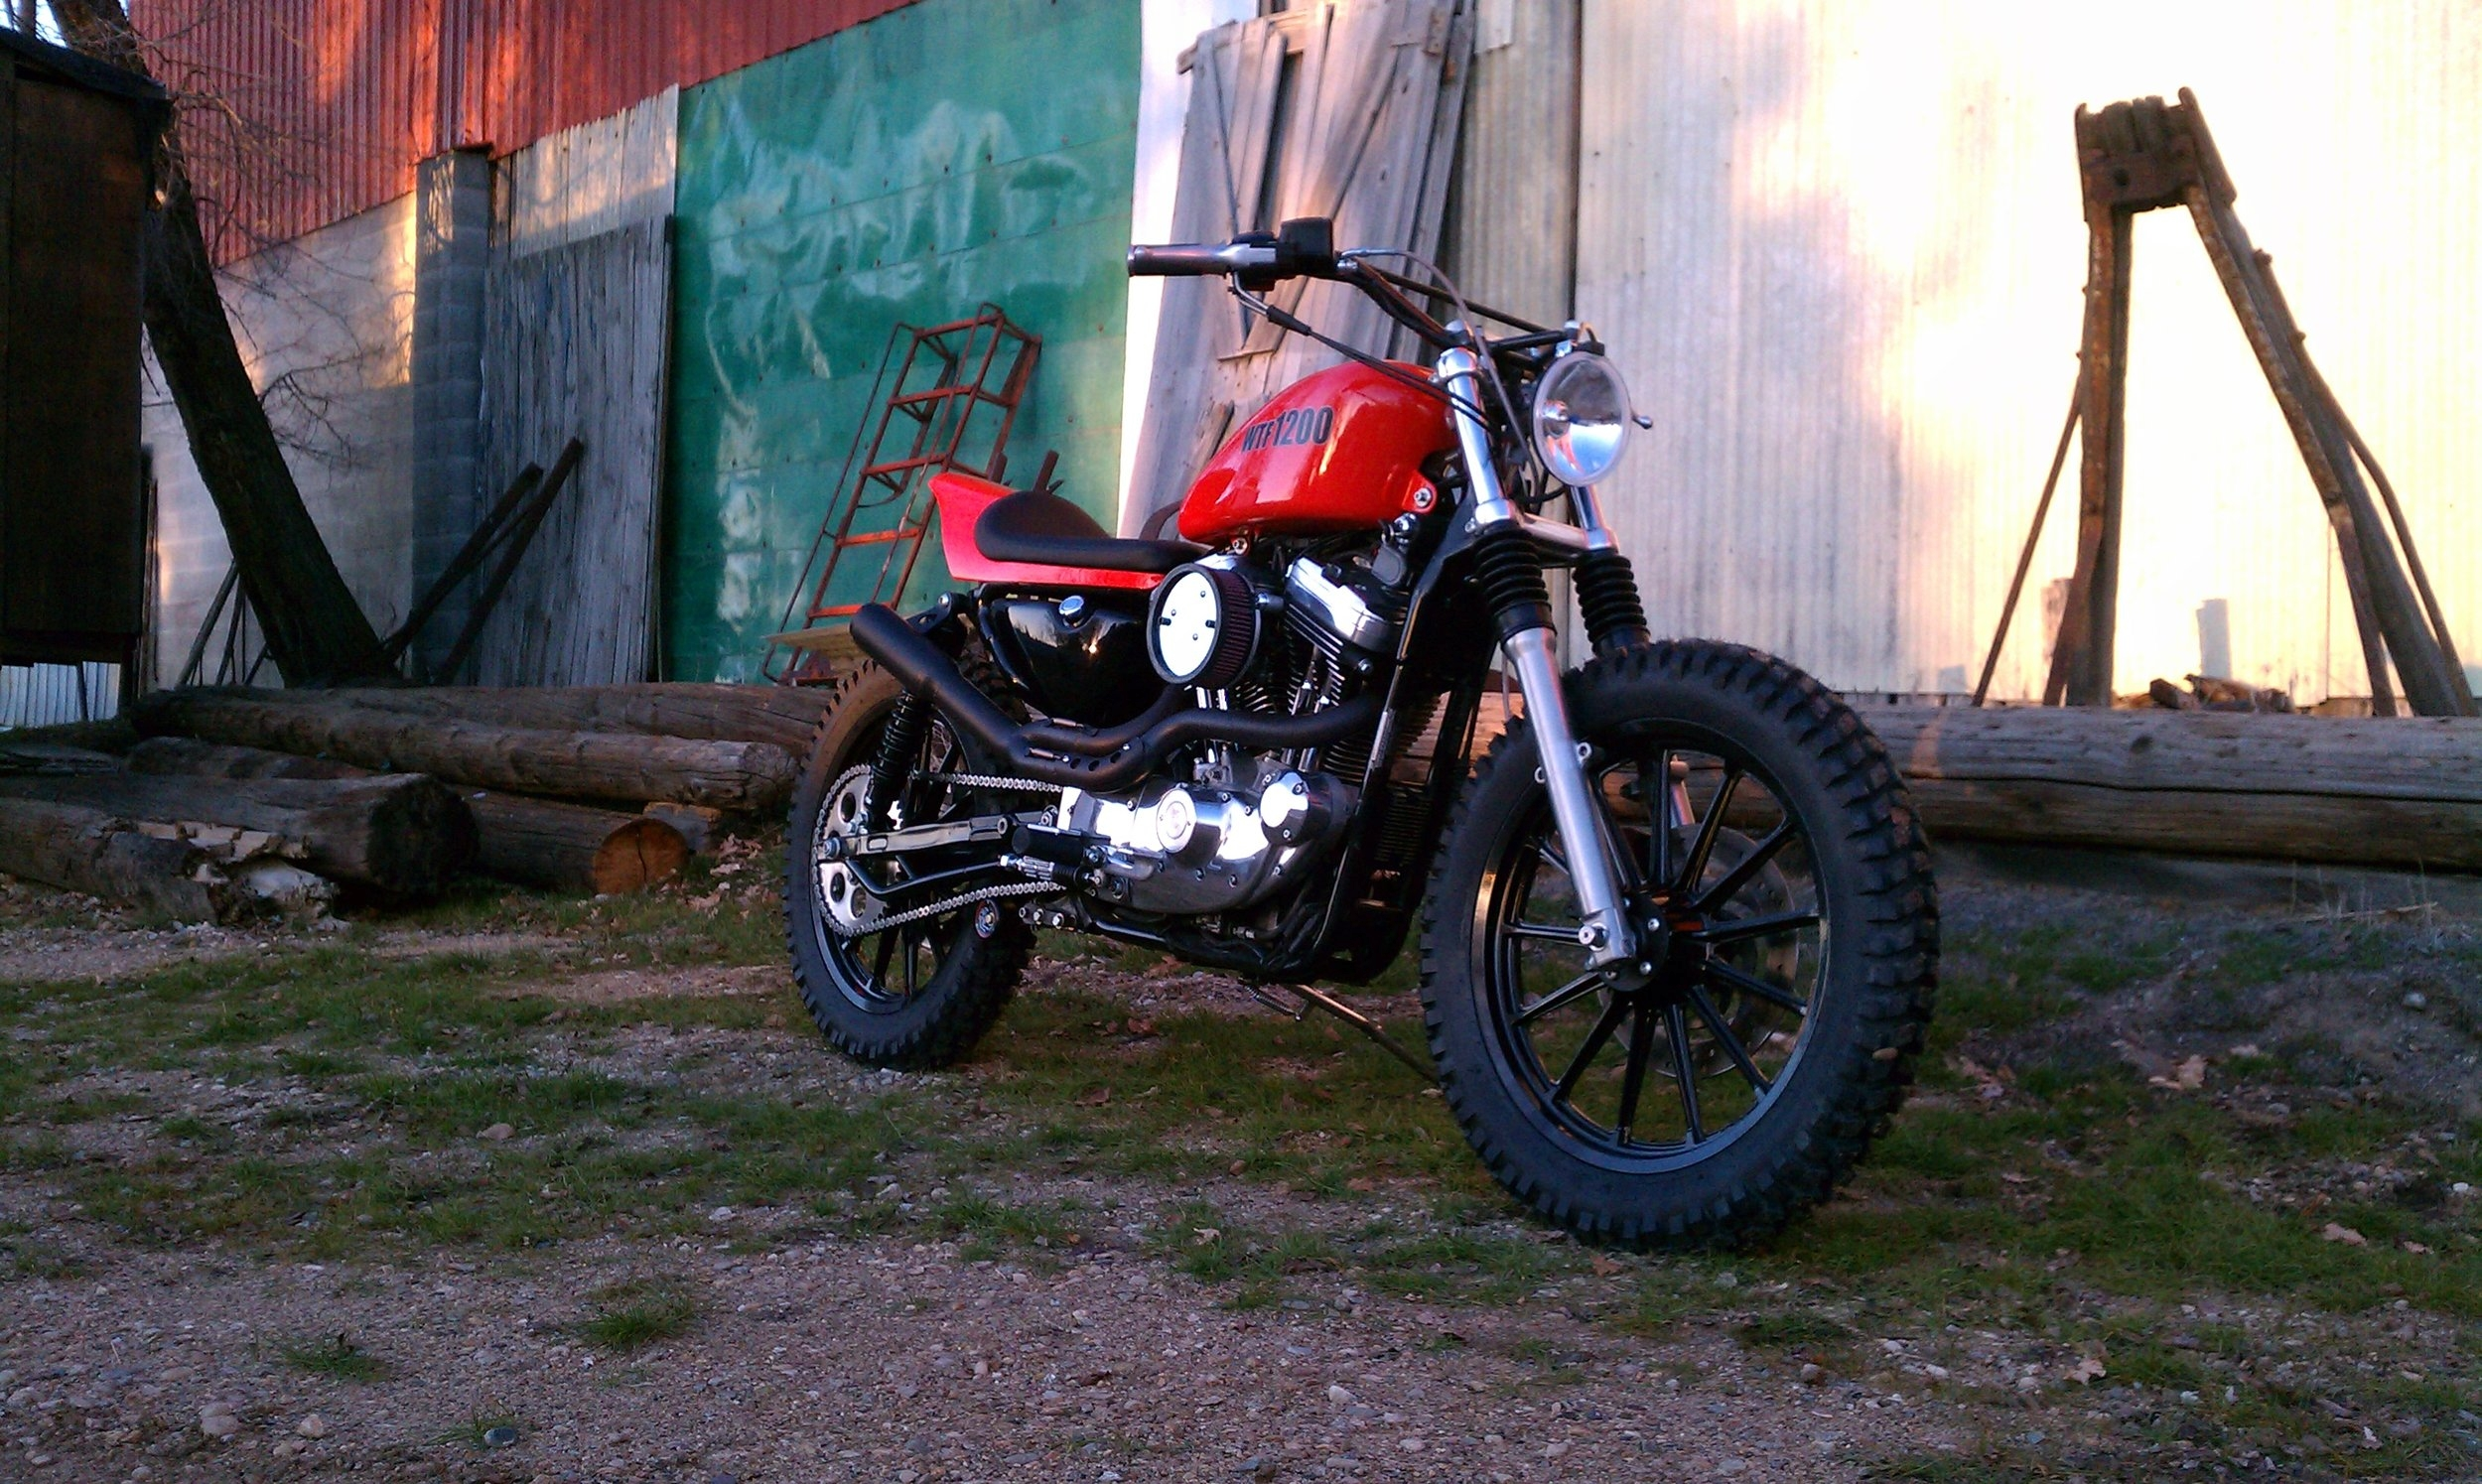 Harley Street Tracker by Todd Apple